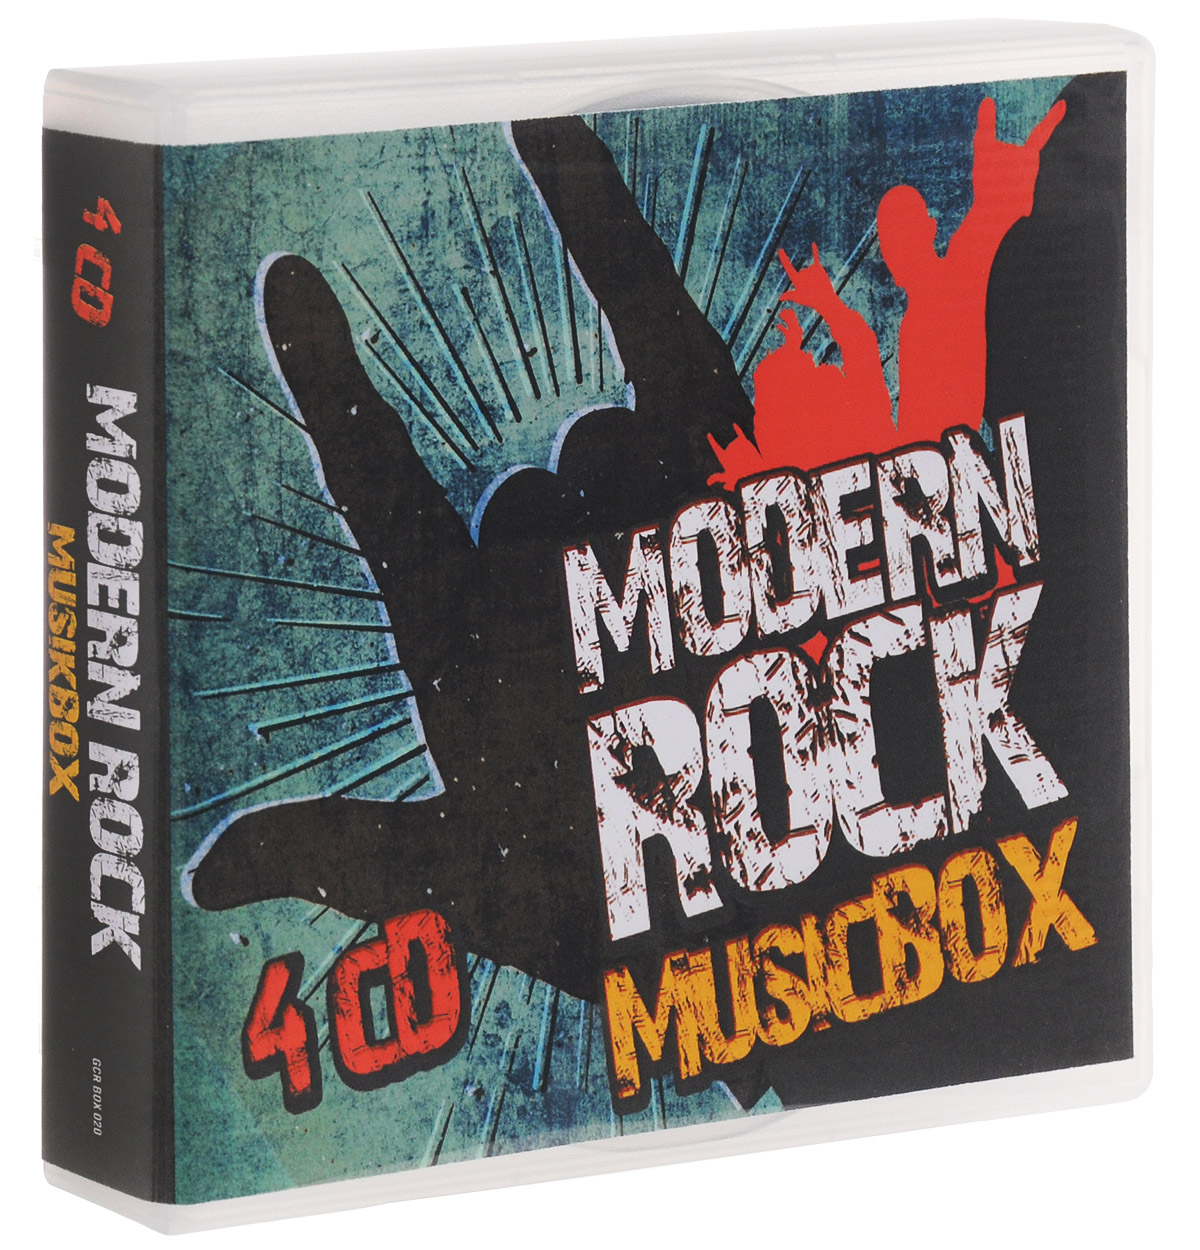 где купить Modern Rock Music Box (4 CD) дешево